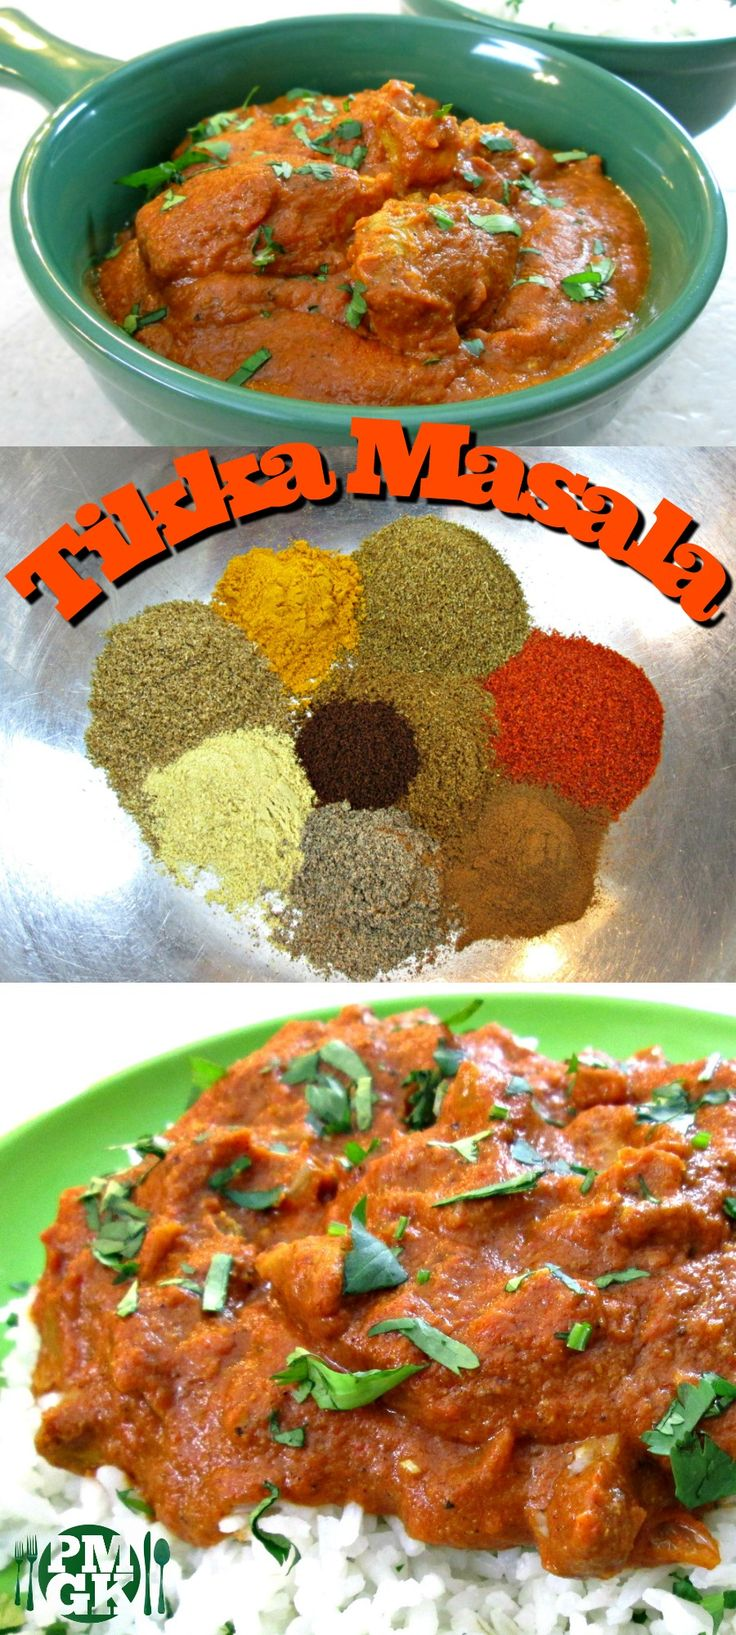 Truly, this is the BEST Chicken Tikka Masala recipe.  It's easy to make and, believe it or not, I don't cut any corners.  So you're getting the real deal.  Plus, I give you an awesome short video tutorial to show you exactly how to do it, so you're guaranteed to not make any mistakes.  You can thank me by sharing this recipe and/or becoming one of Patrons!  Poor Man's Gourmet